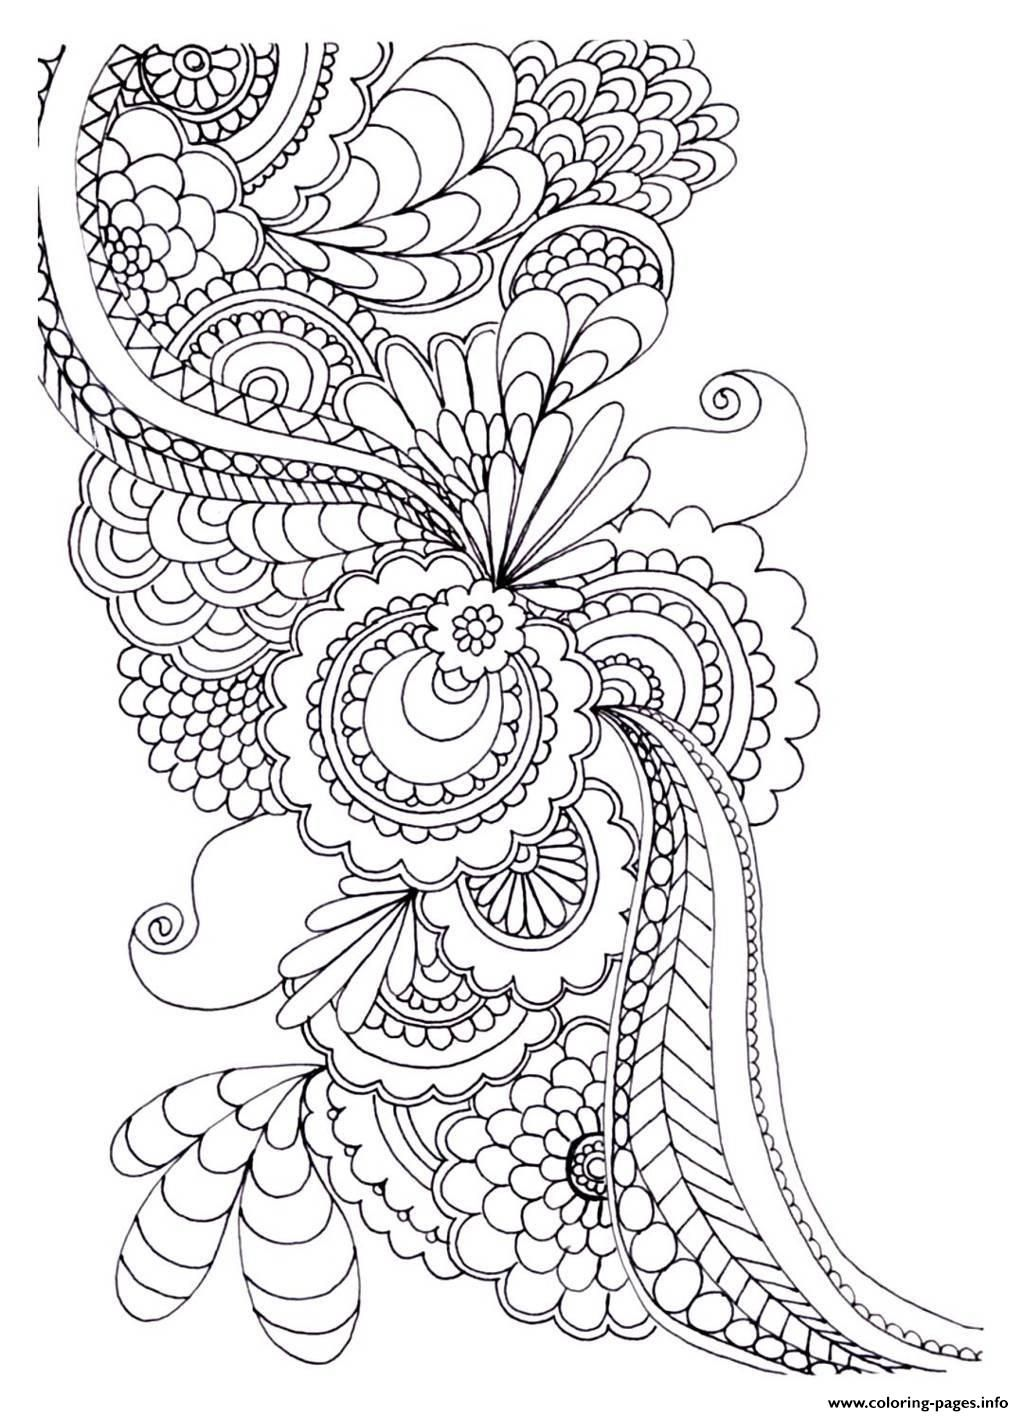 Coloring pictures for adults flowers - Print Adult Zen Anti Stress To Print Drawing Flowers Coloring Pages